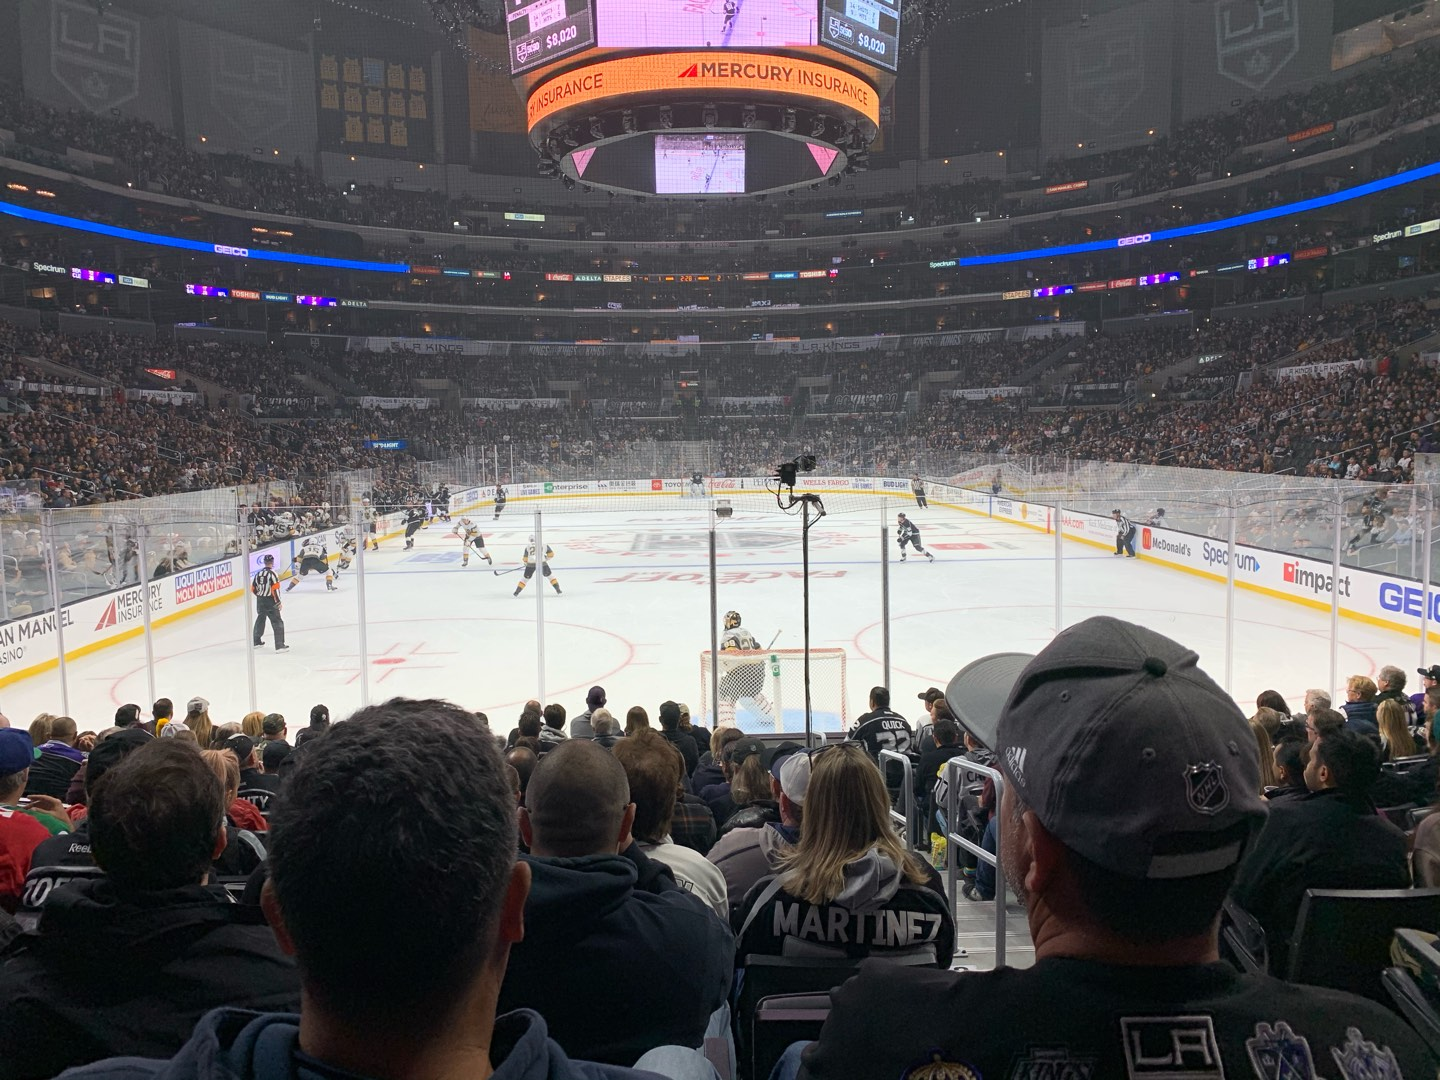 Staples Center Section 106 Row 8 Seat 3